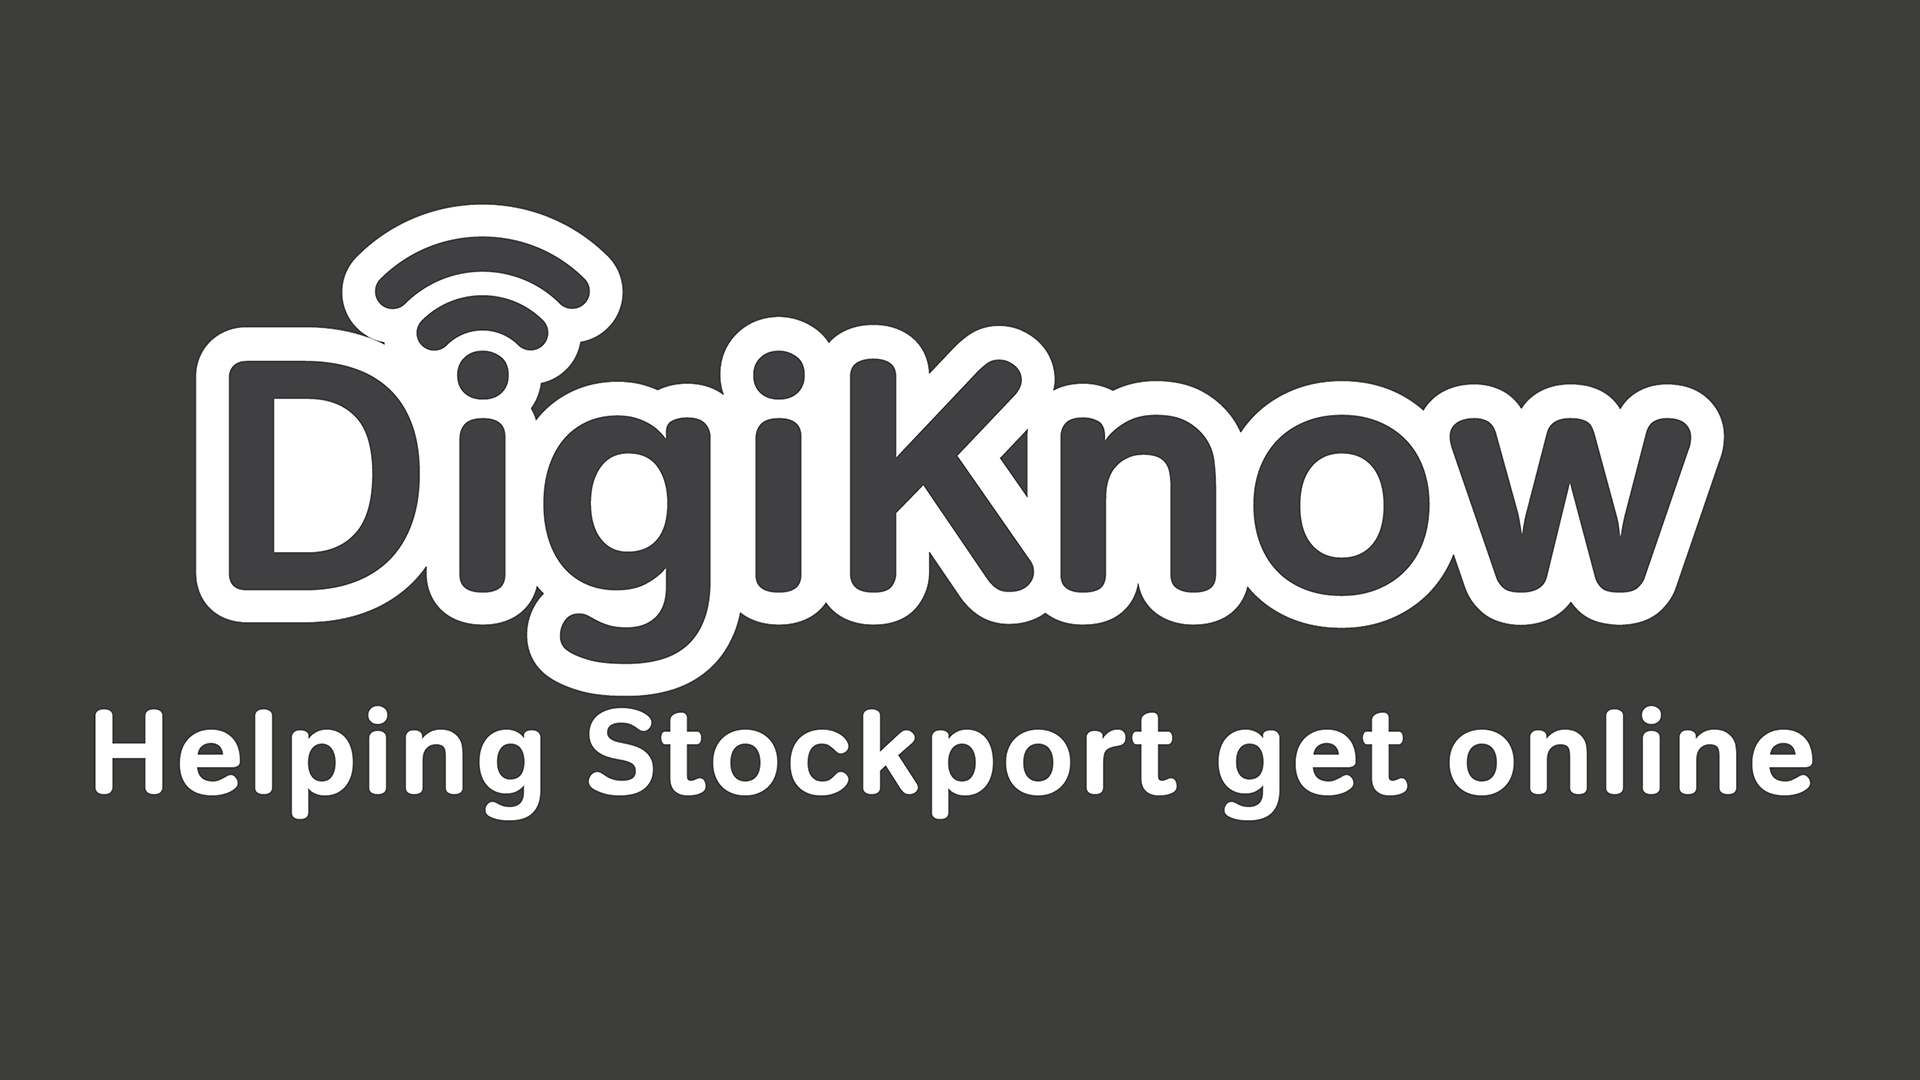 Free digital training sessions for job seekers at Stockport libraries